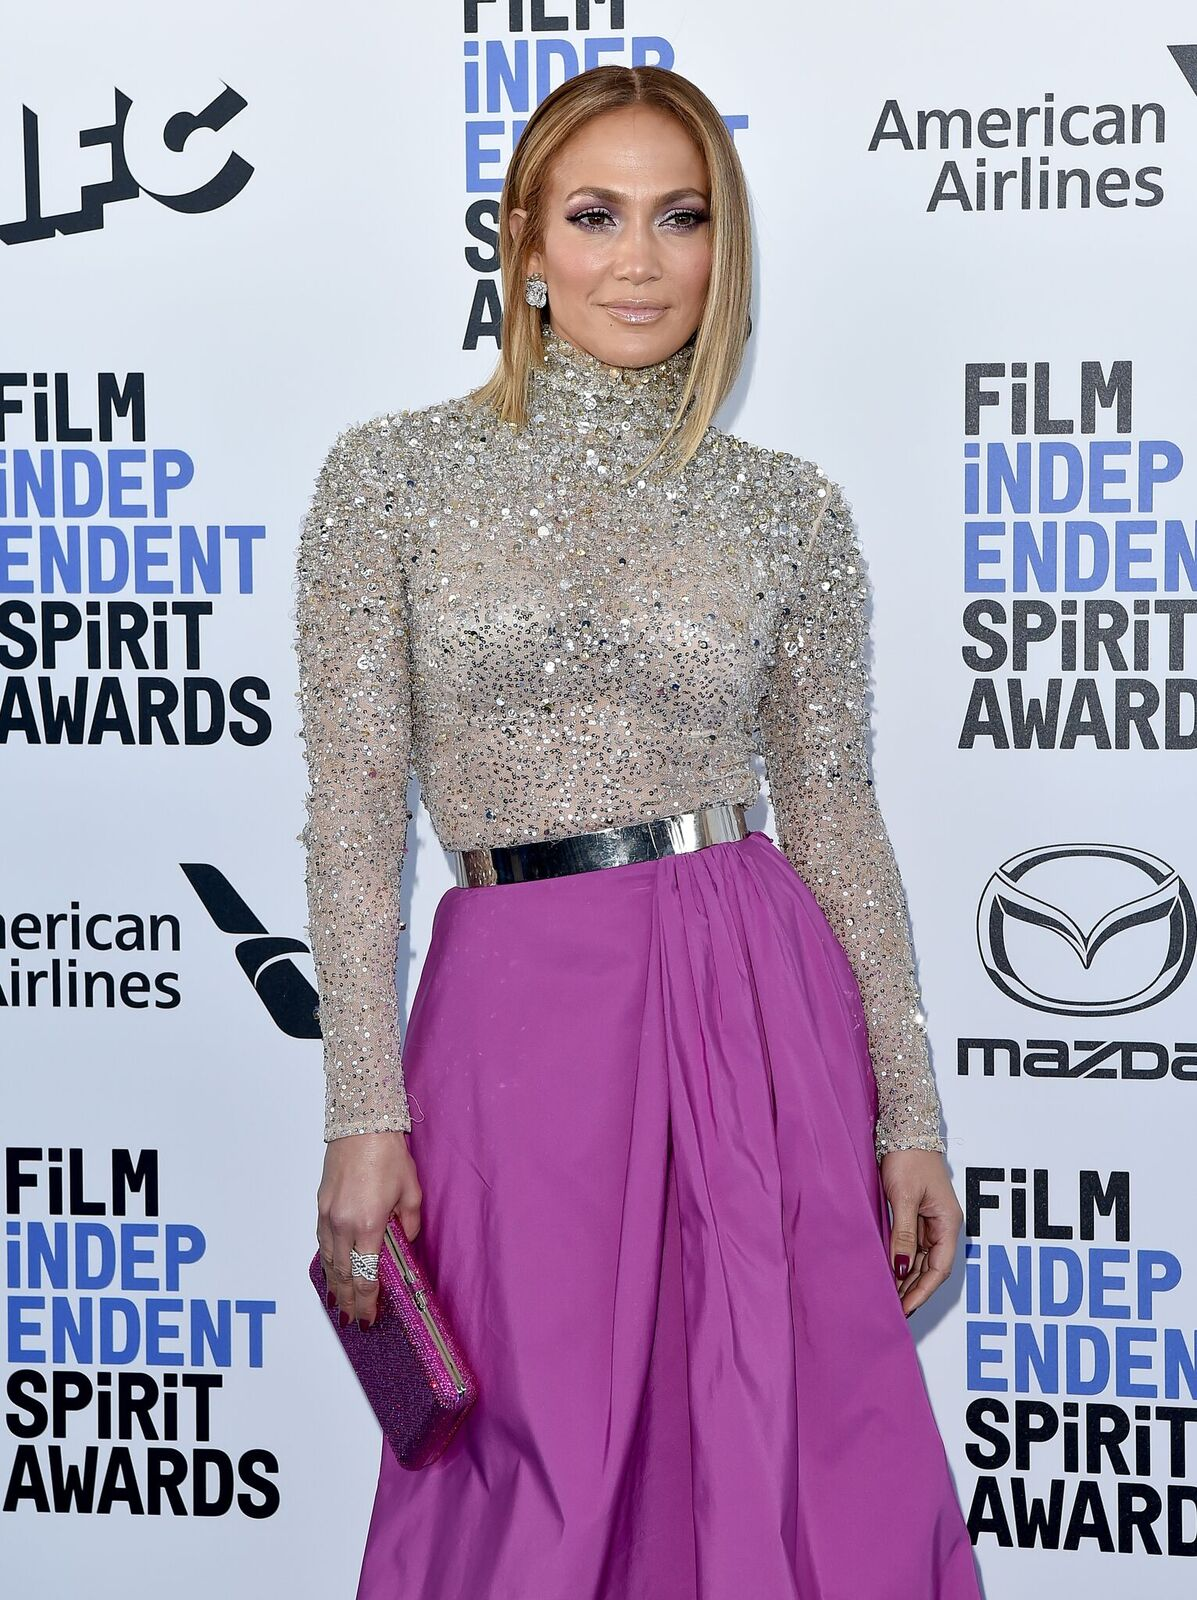 Jennifer Lopez at the Film Independent Spirit Awards on February 08, 2020, in Santa Monica, California | Photo: Axelle/Bauer-Griffin/FilmMagic/Getty Images